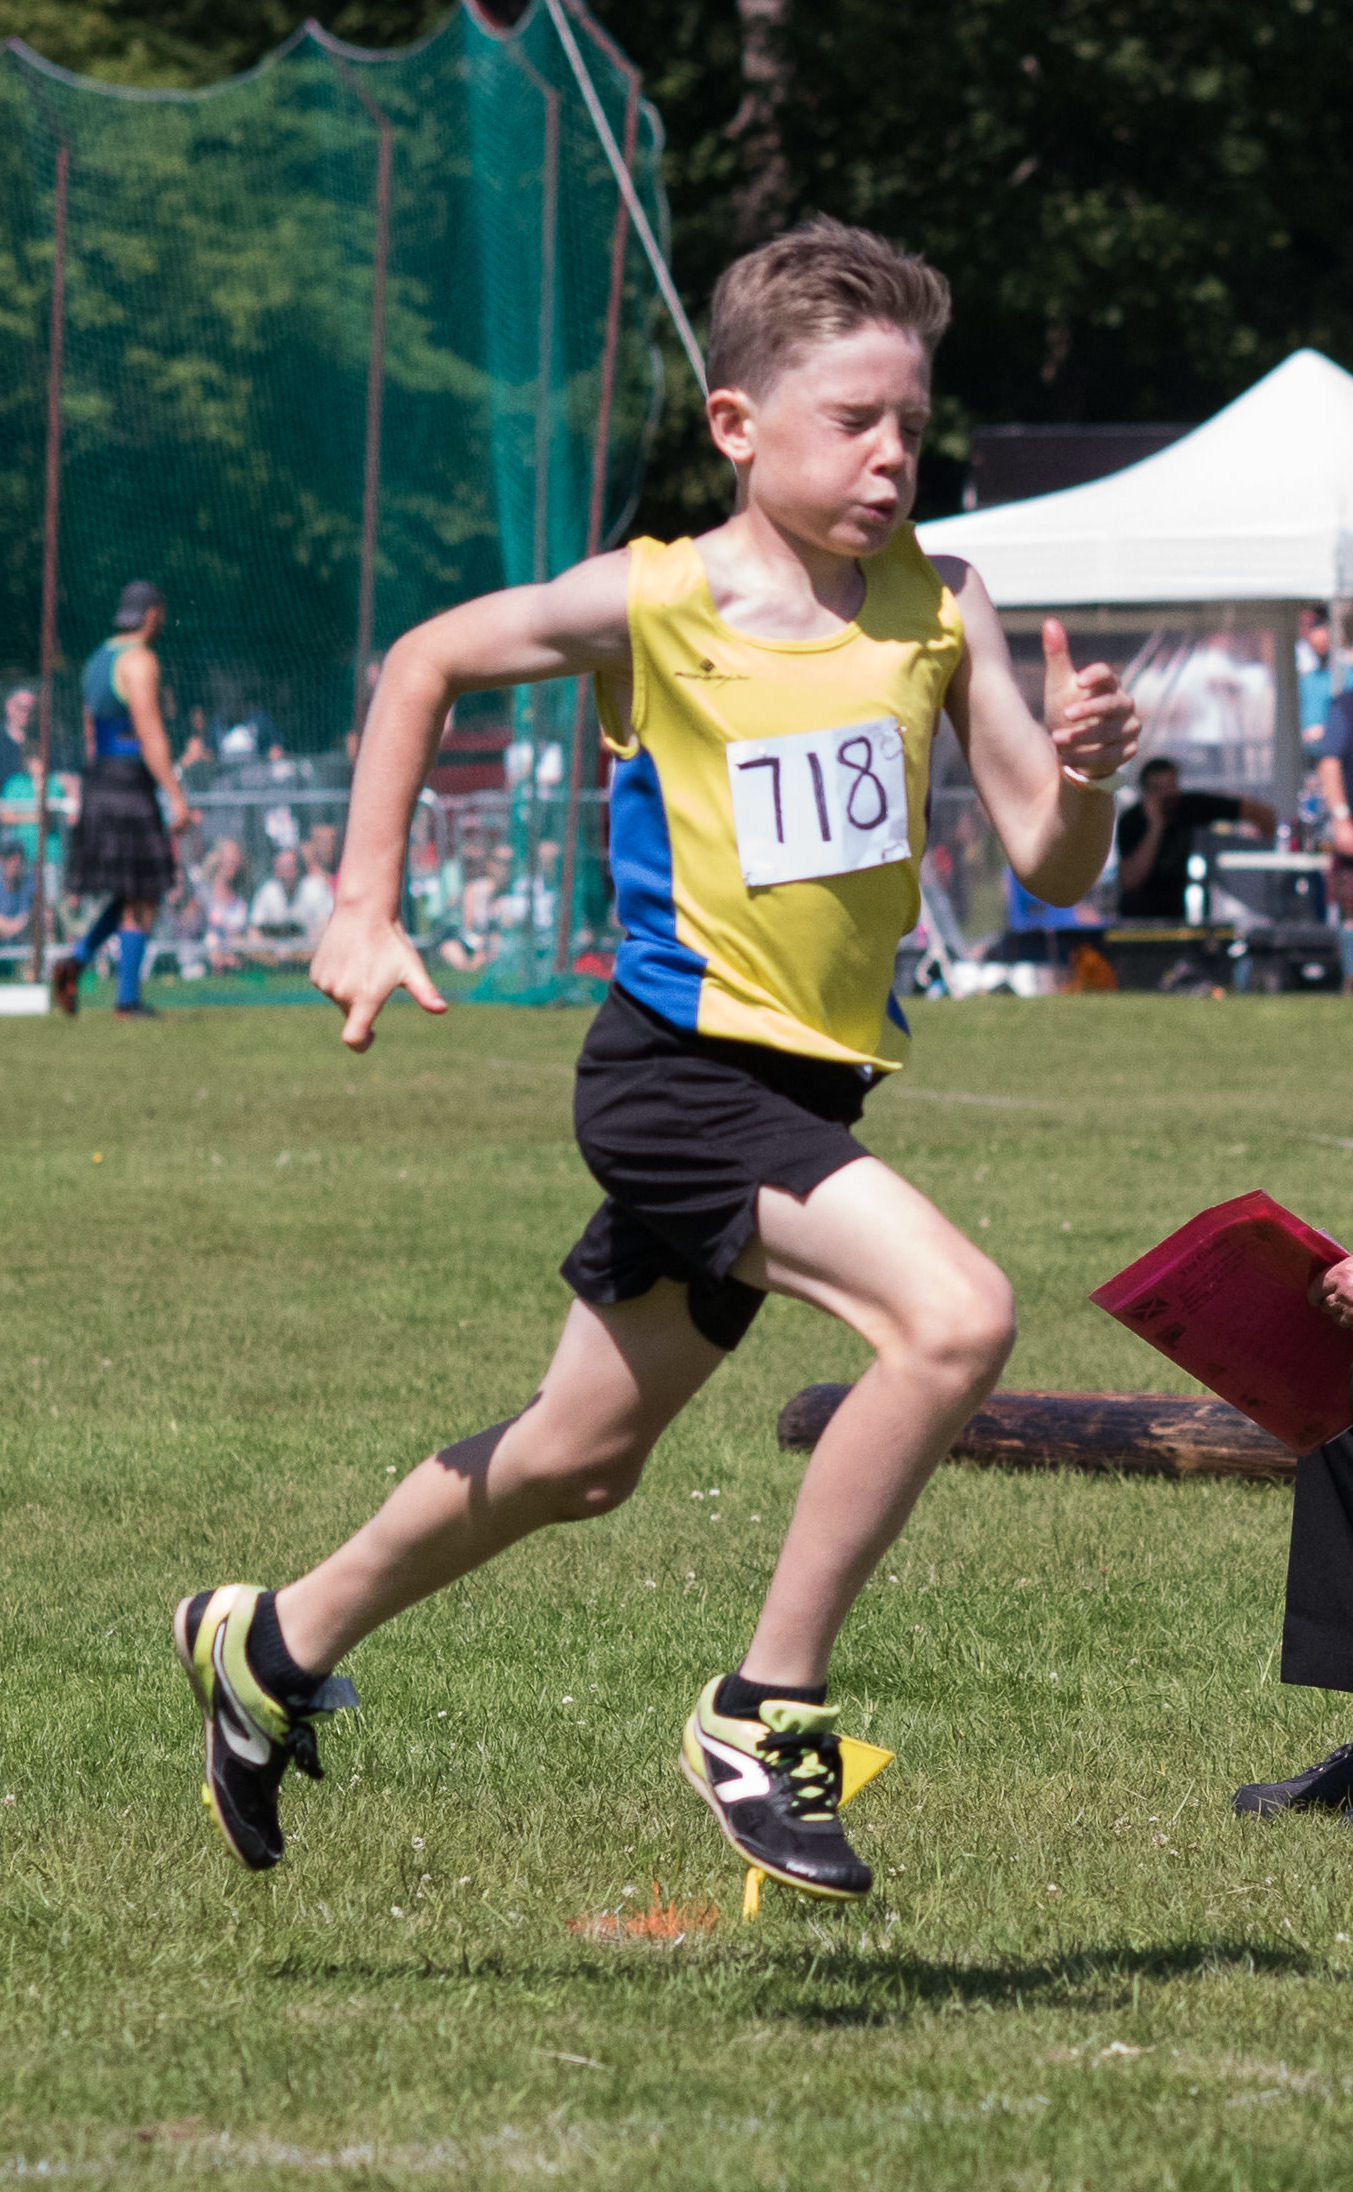 Highland Games Image 26